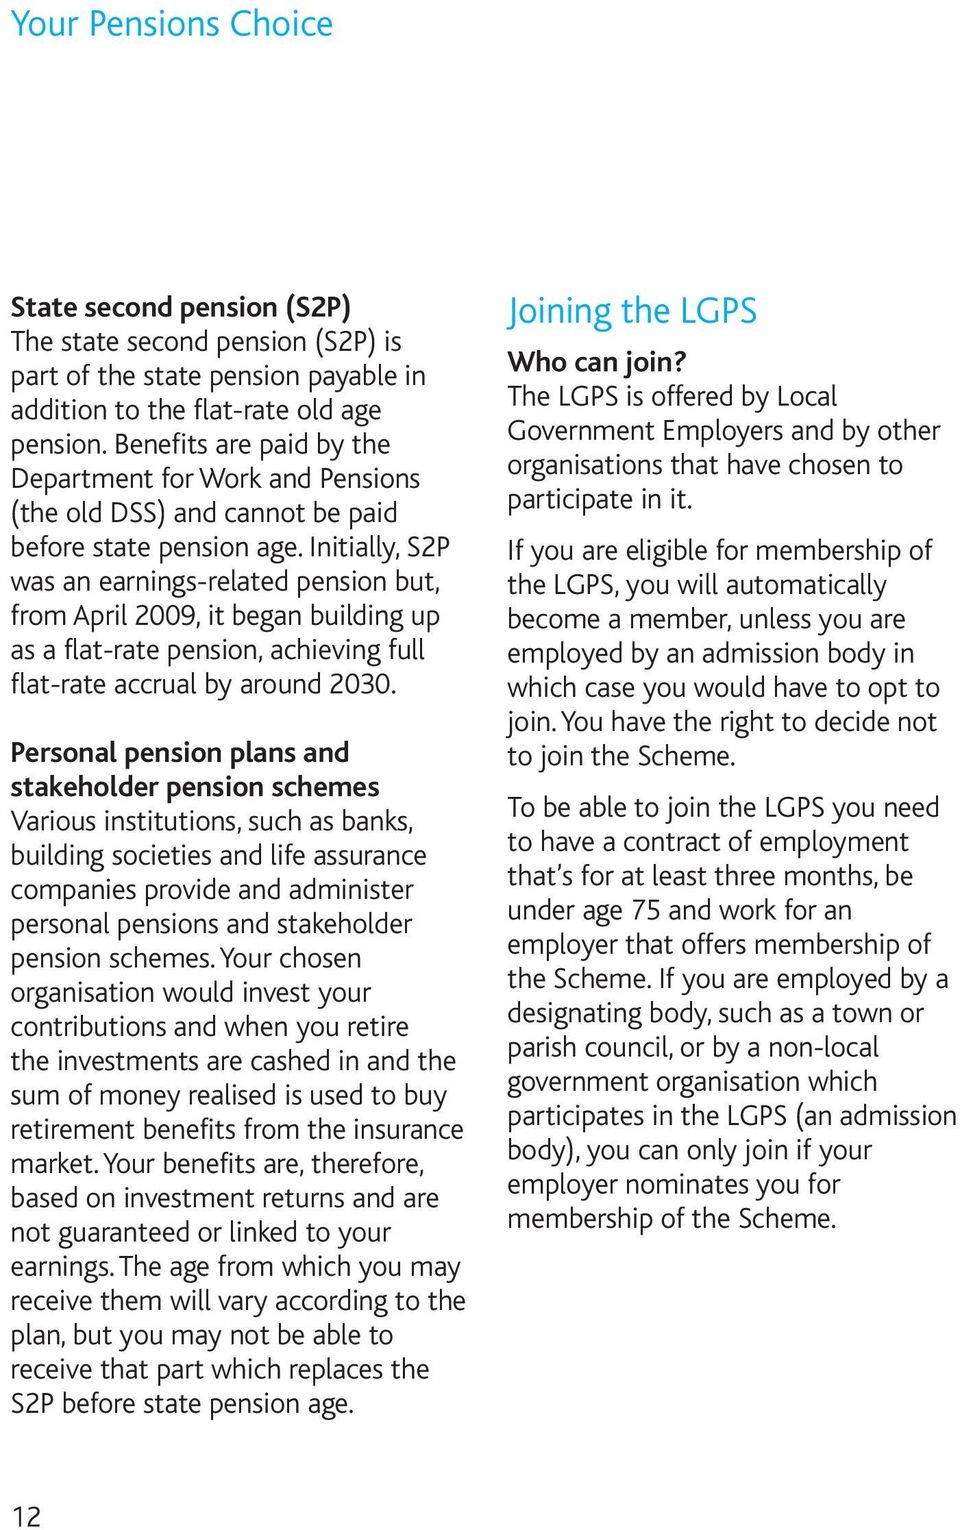 Initially, S2P was an earnings-related pension but, from April 2009, it began building up as a flat-rate pension, achieving full flat-rate accrual by around 2030.